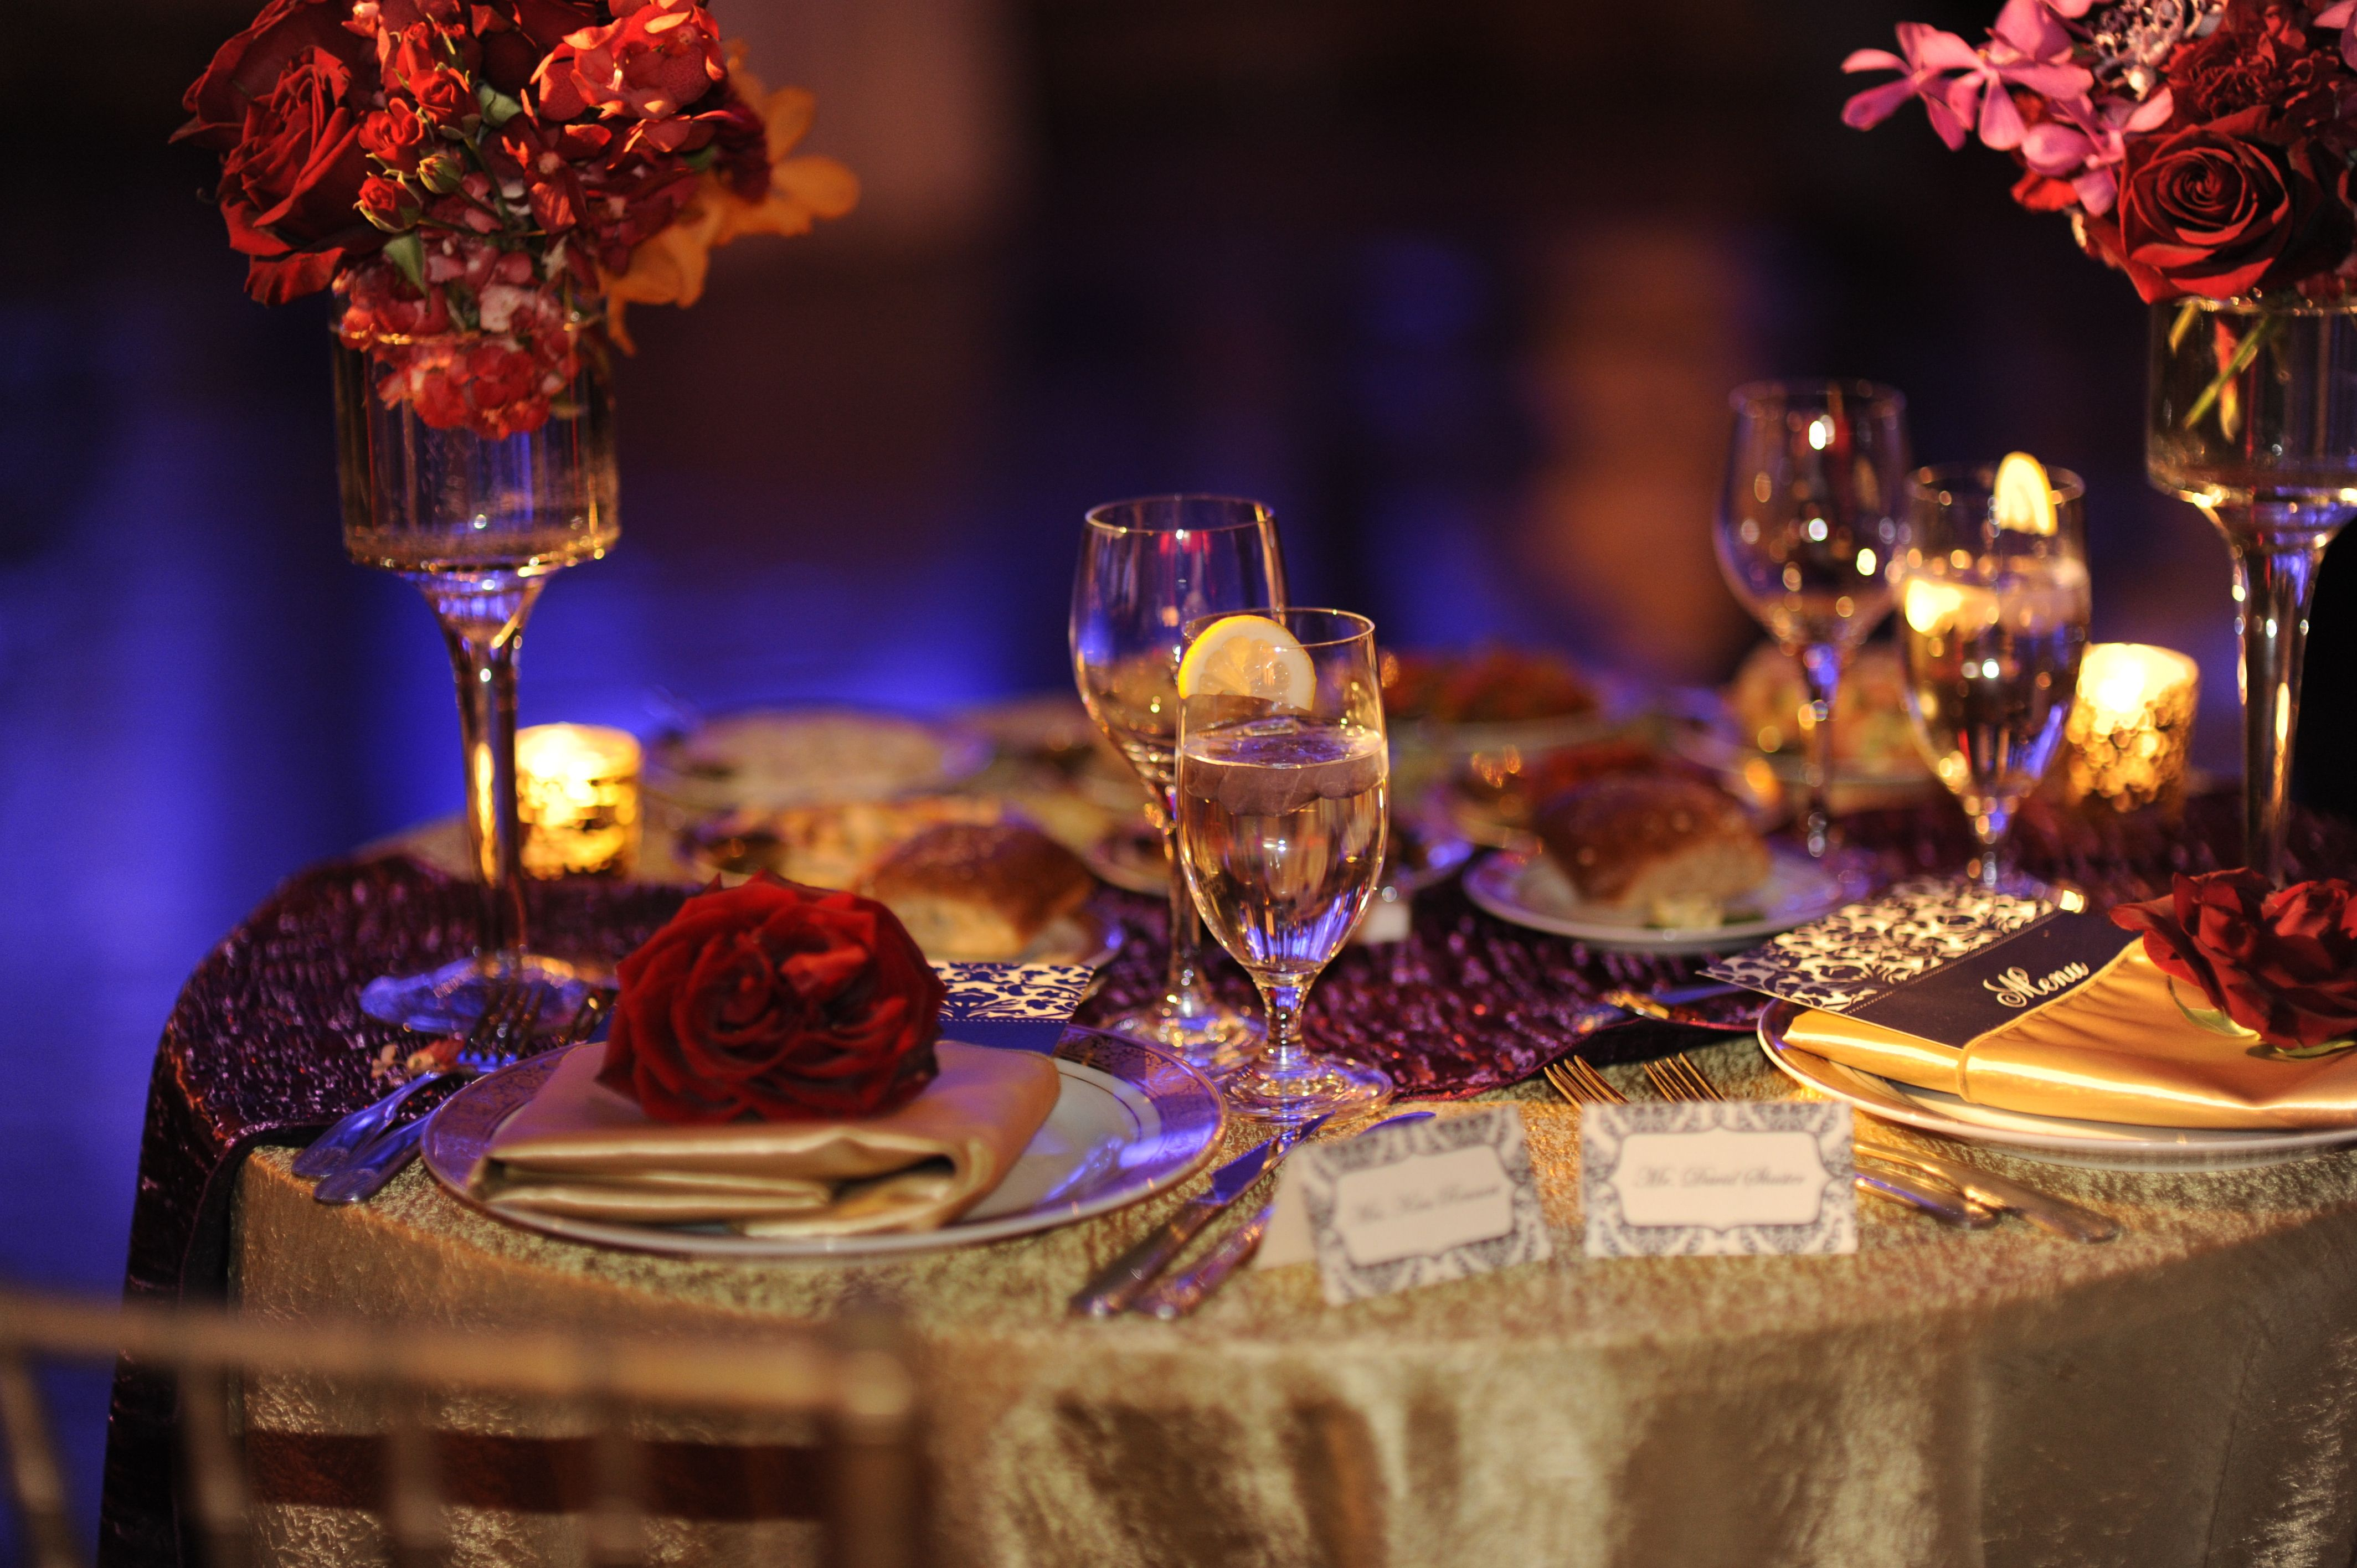 Wedding or Party Table Setting. Red, purple, pink, and orange ...